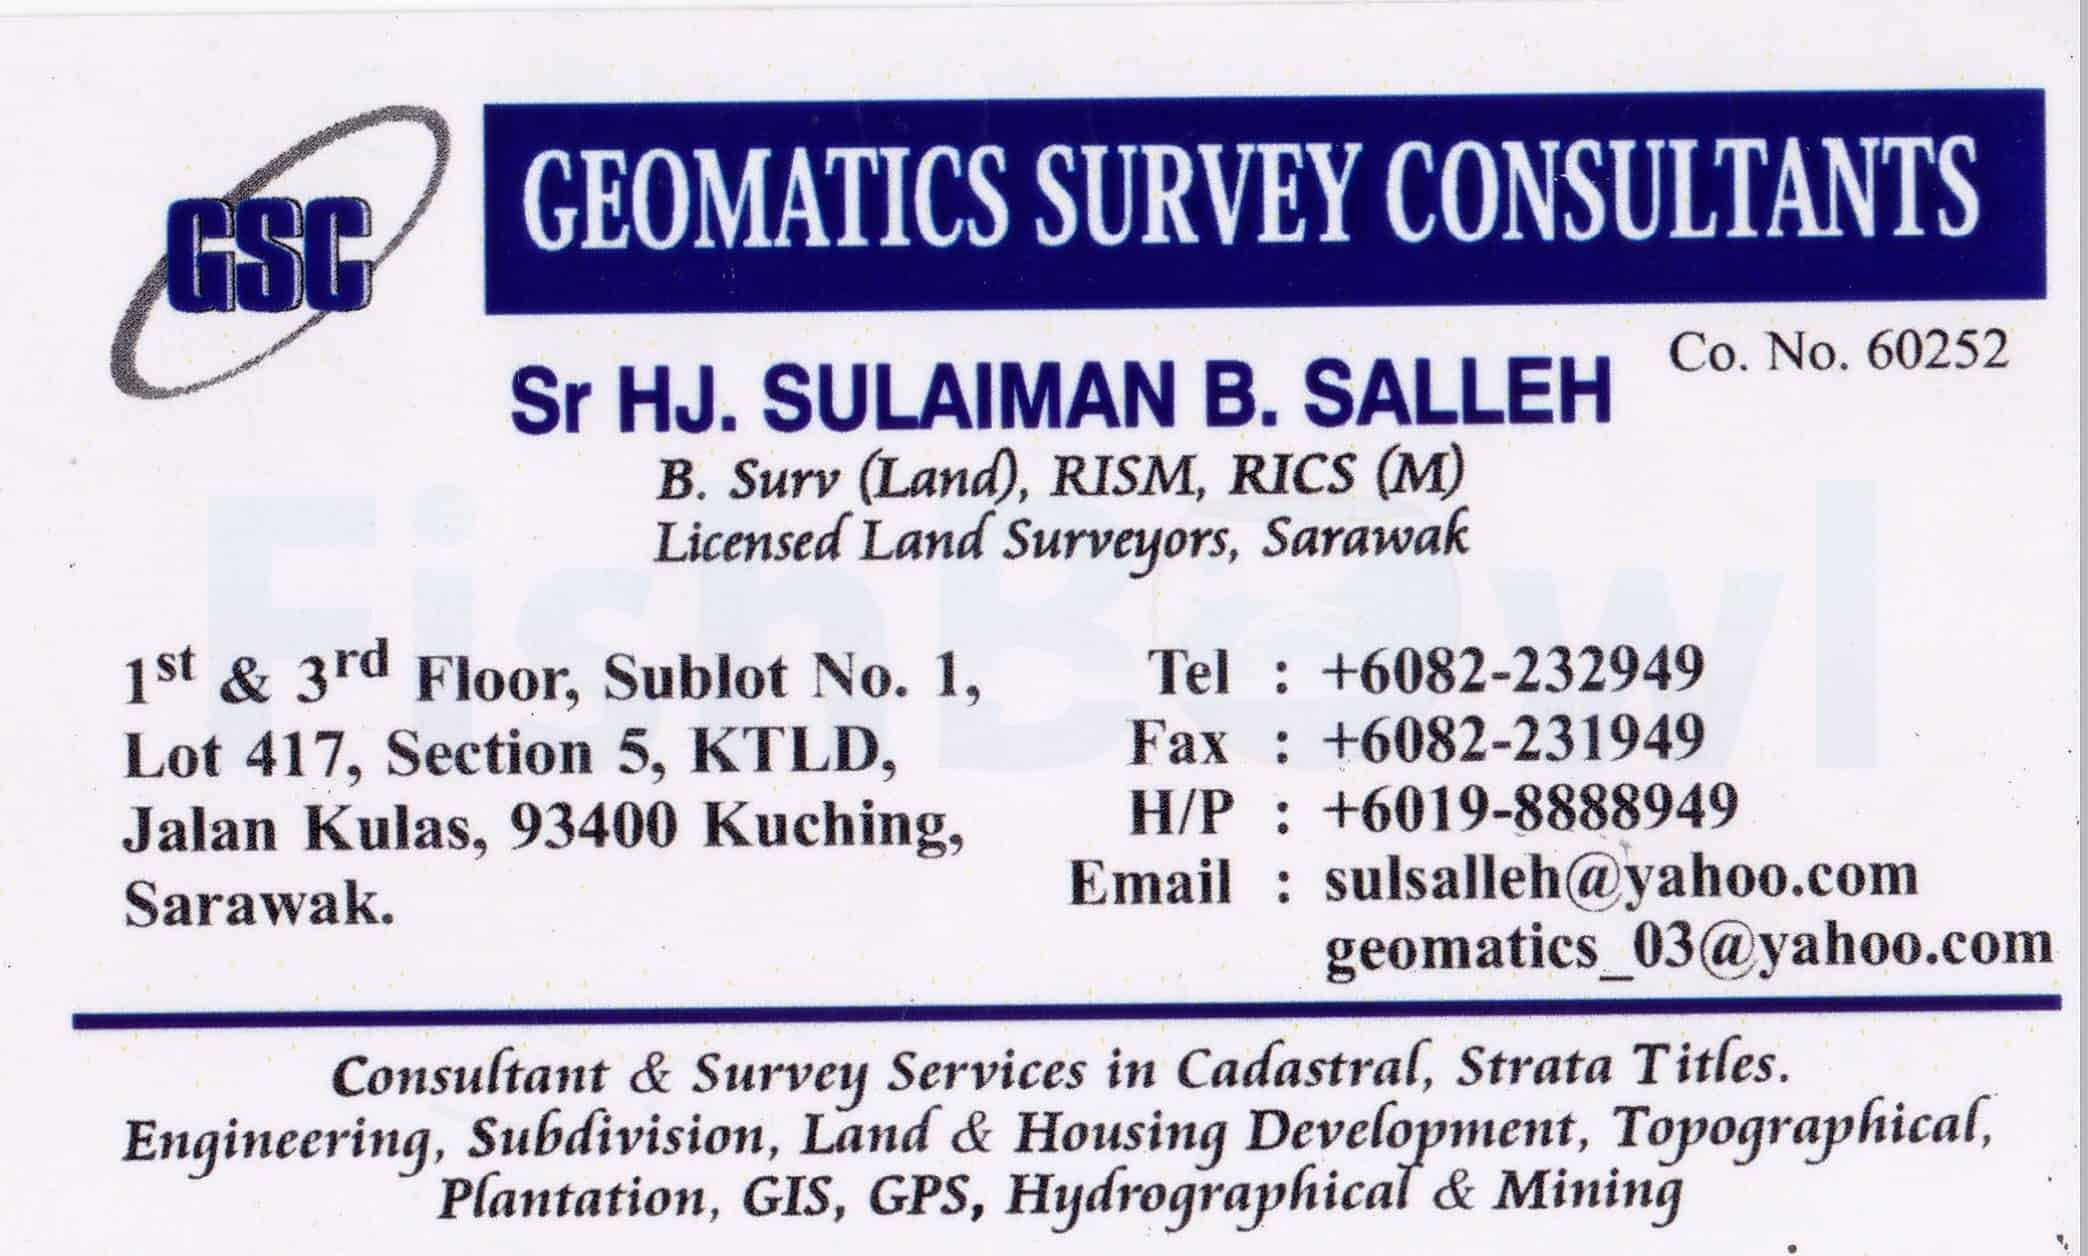 Geomatics survey consultants business card directory name card gsc bossg reheart Choice Image